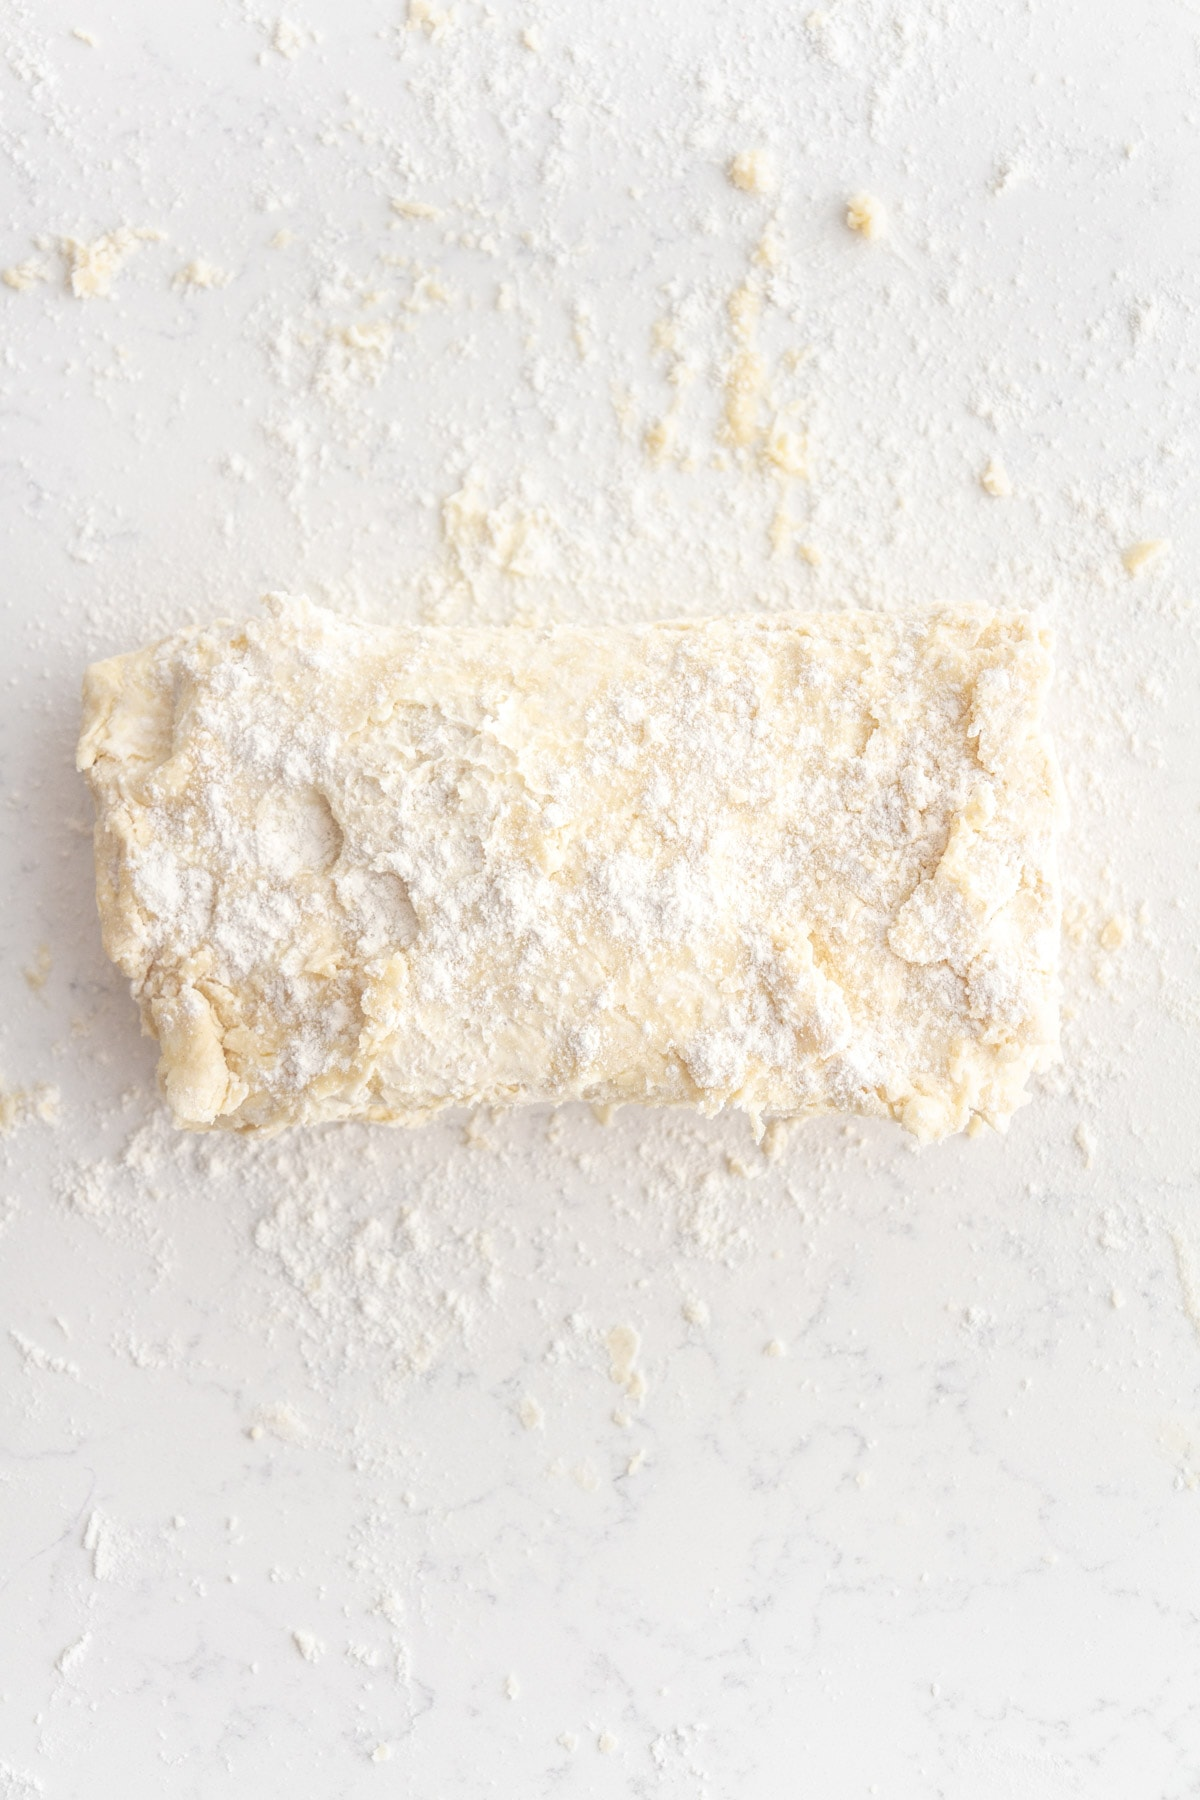 rough puff pastry dough on a surface